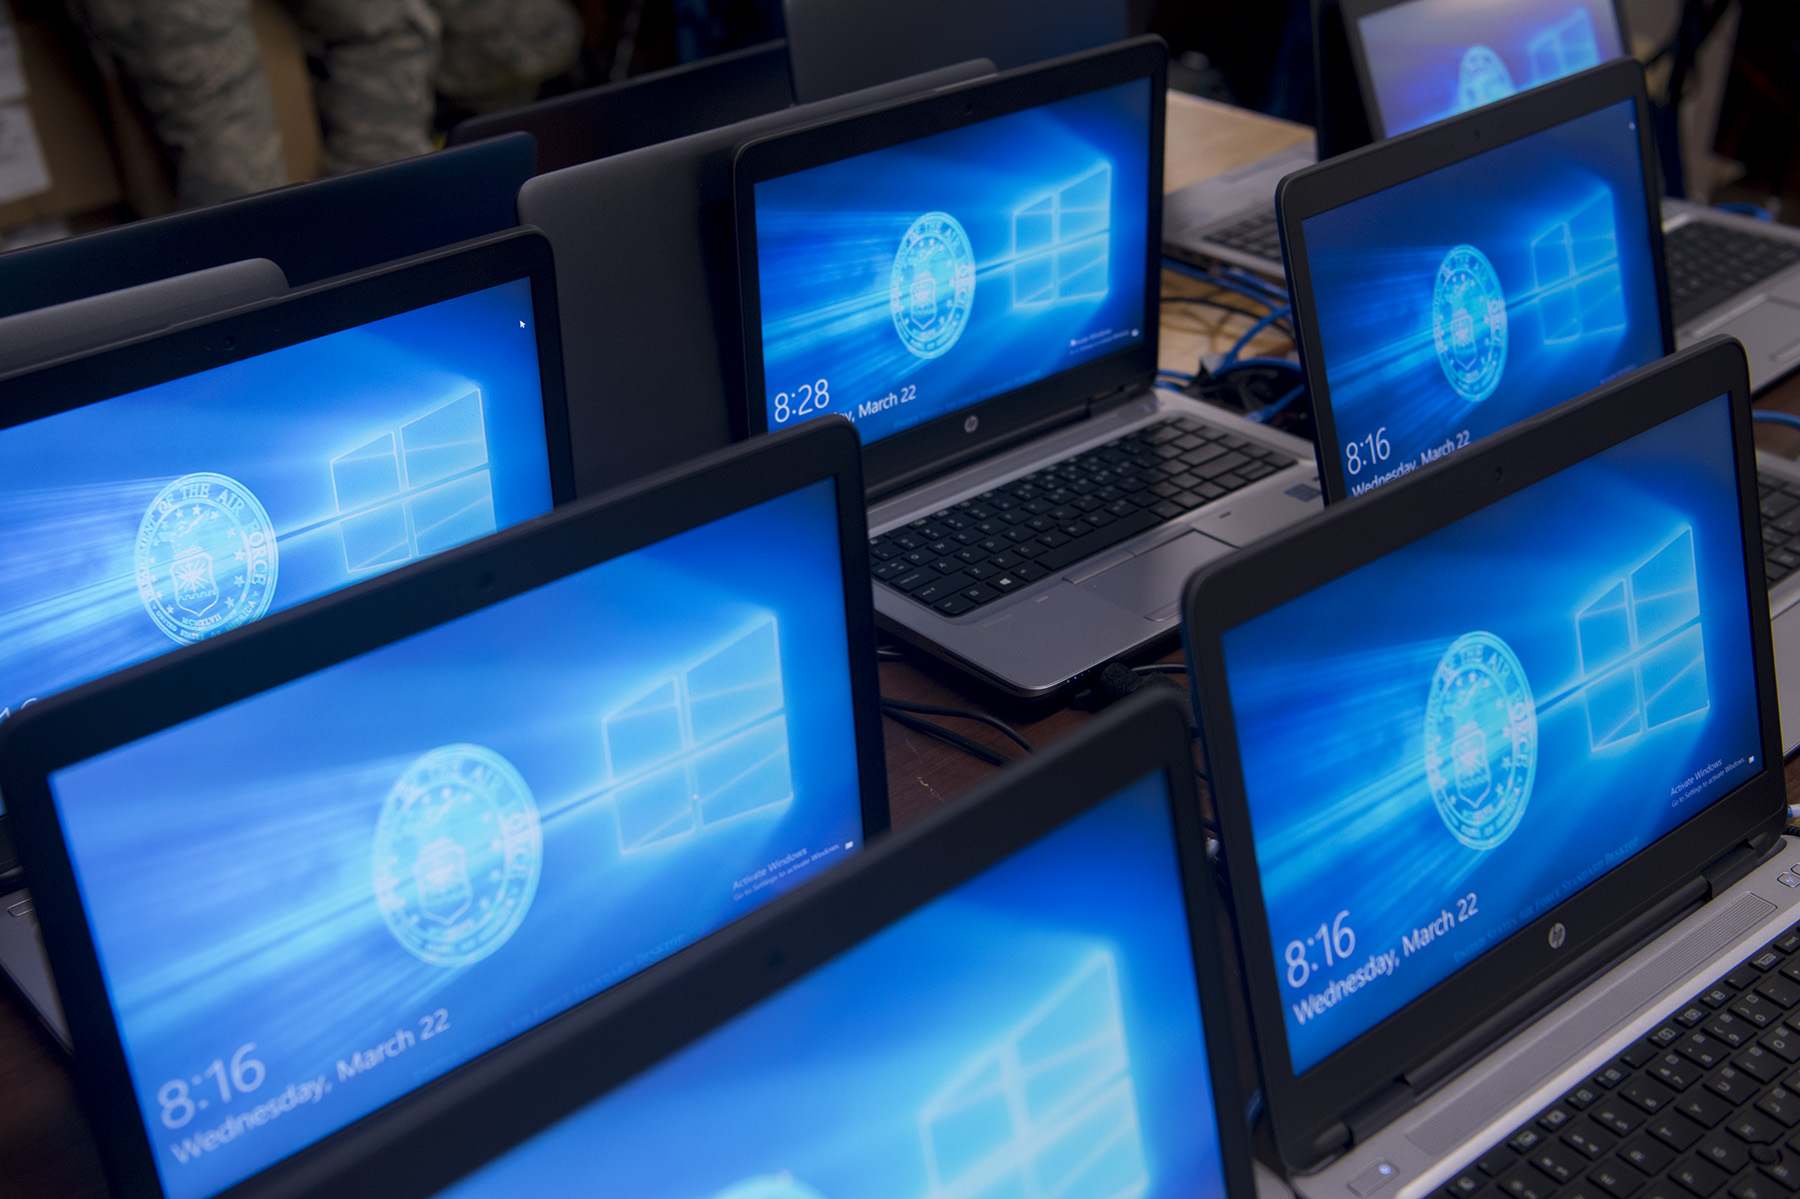 moving from windows 7 to windows 10 gets complicated as you add more machines